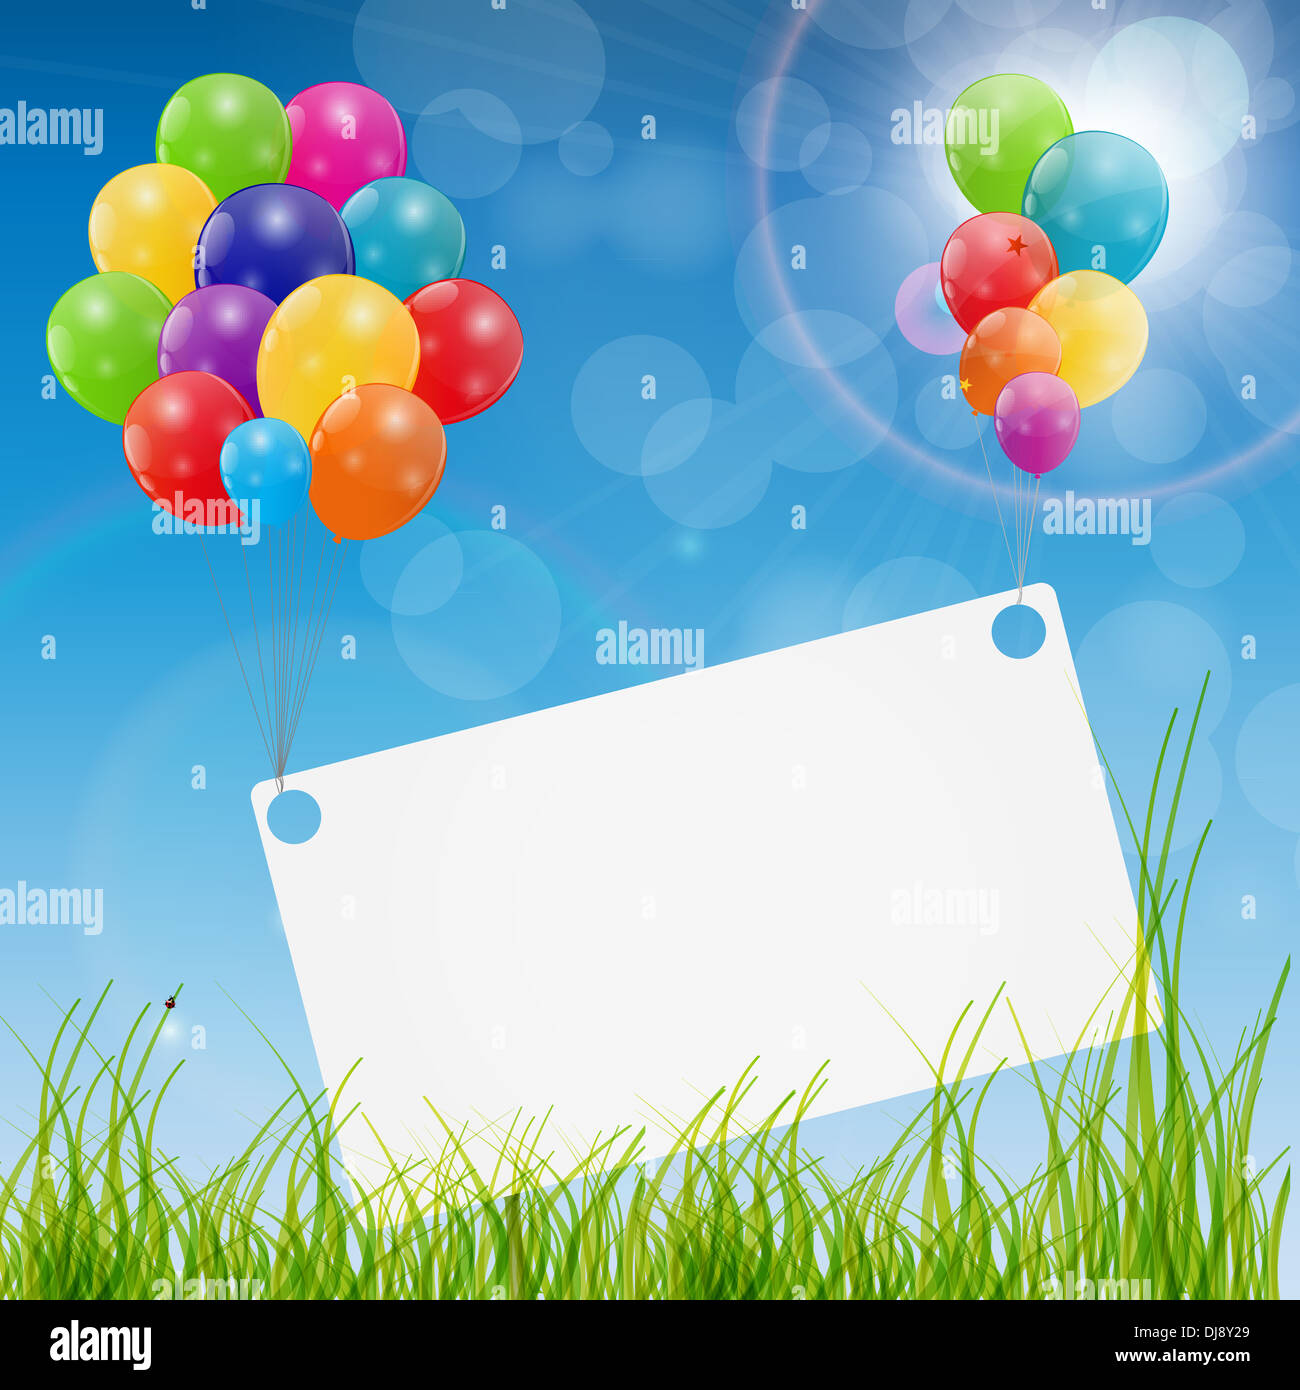 color glossy balloons birthday card background vector illustration